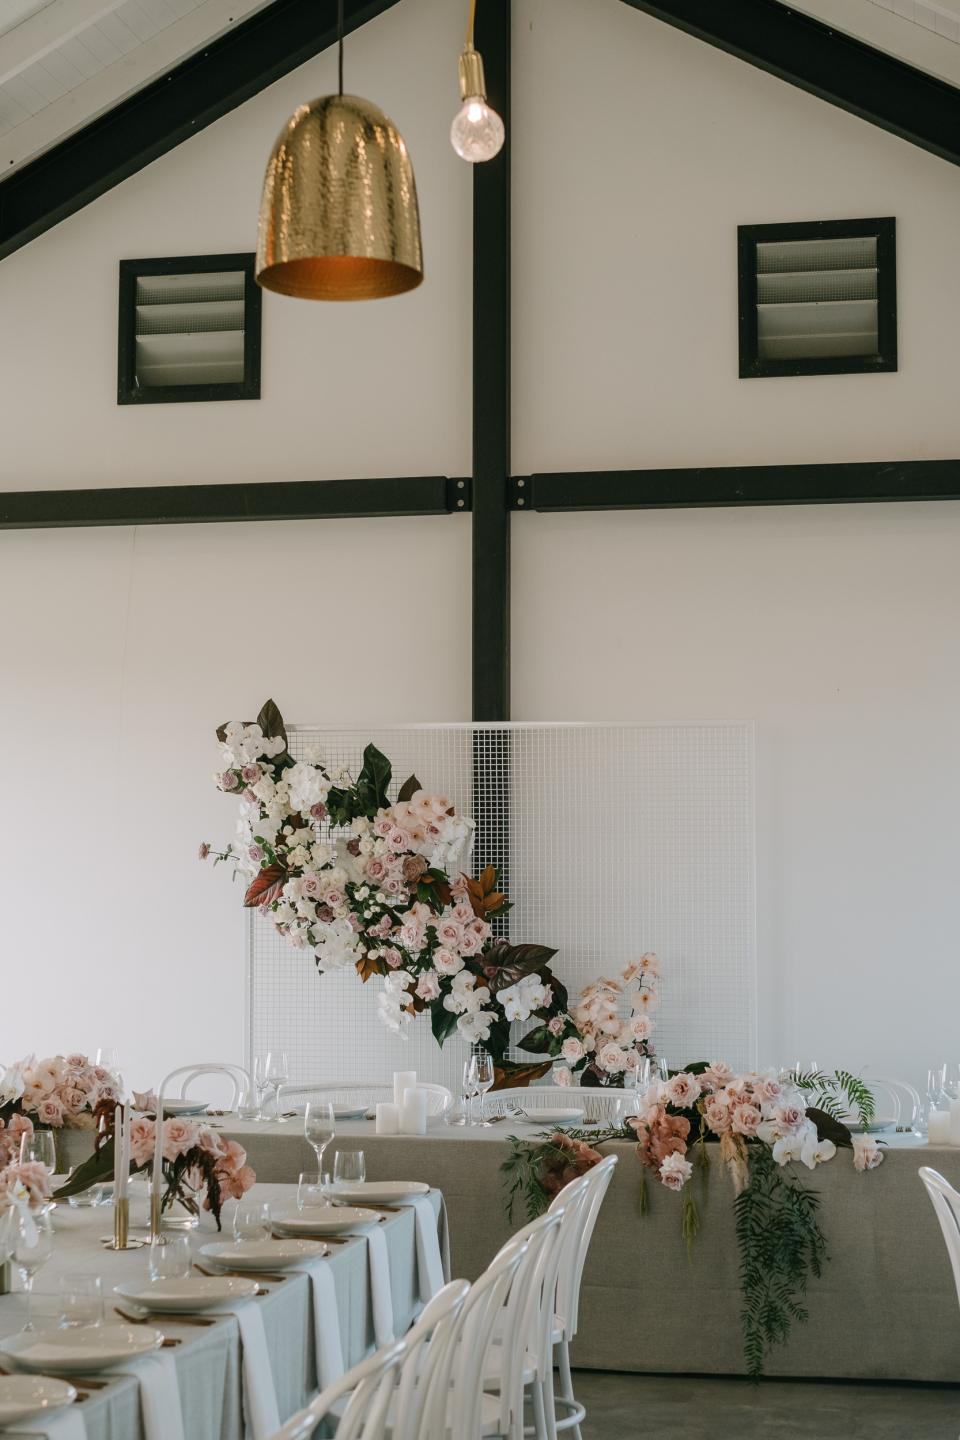 Wedding Decoration and Prop Hire Checklist - Image via Lucas and Co Photography